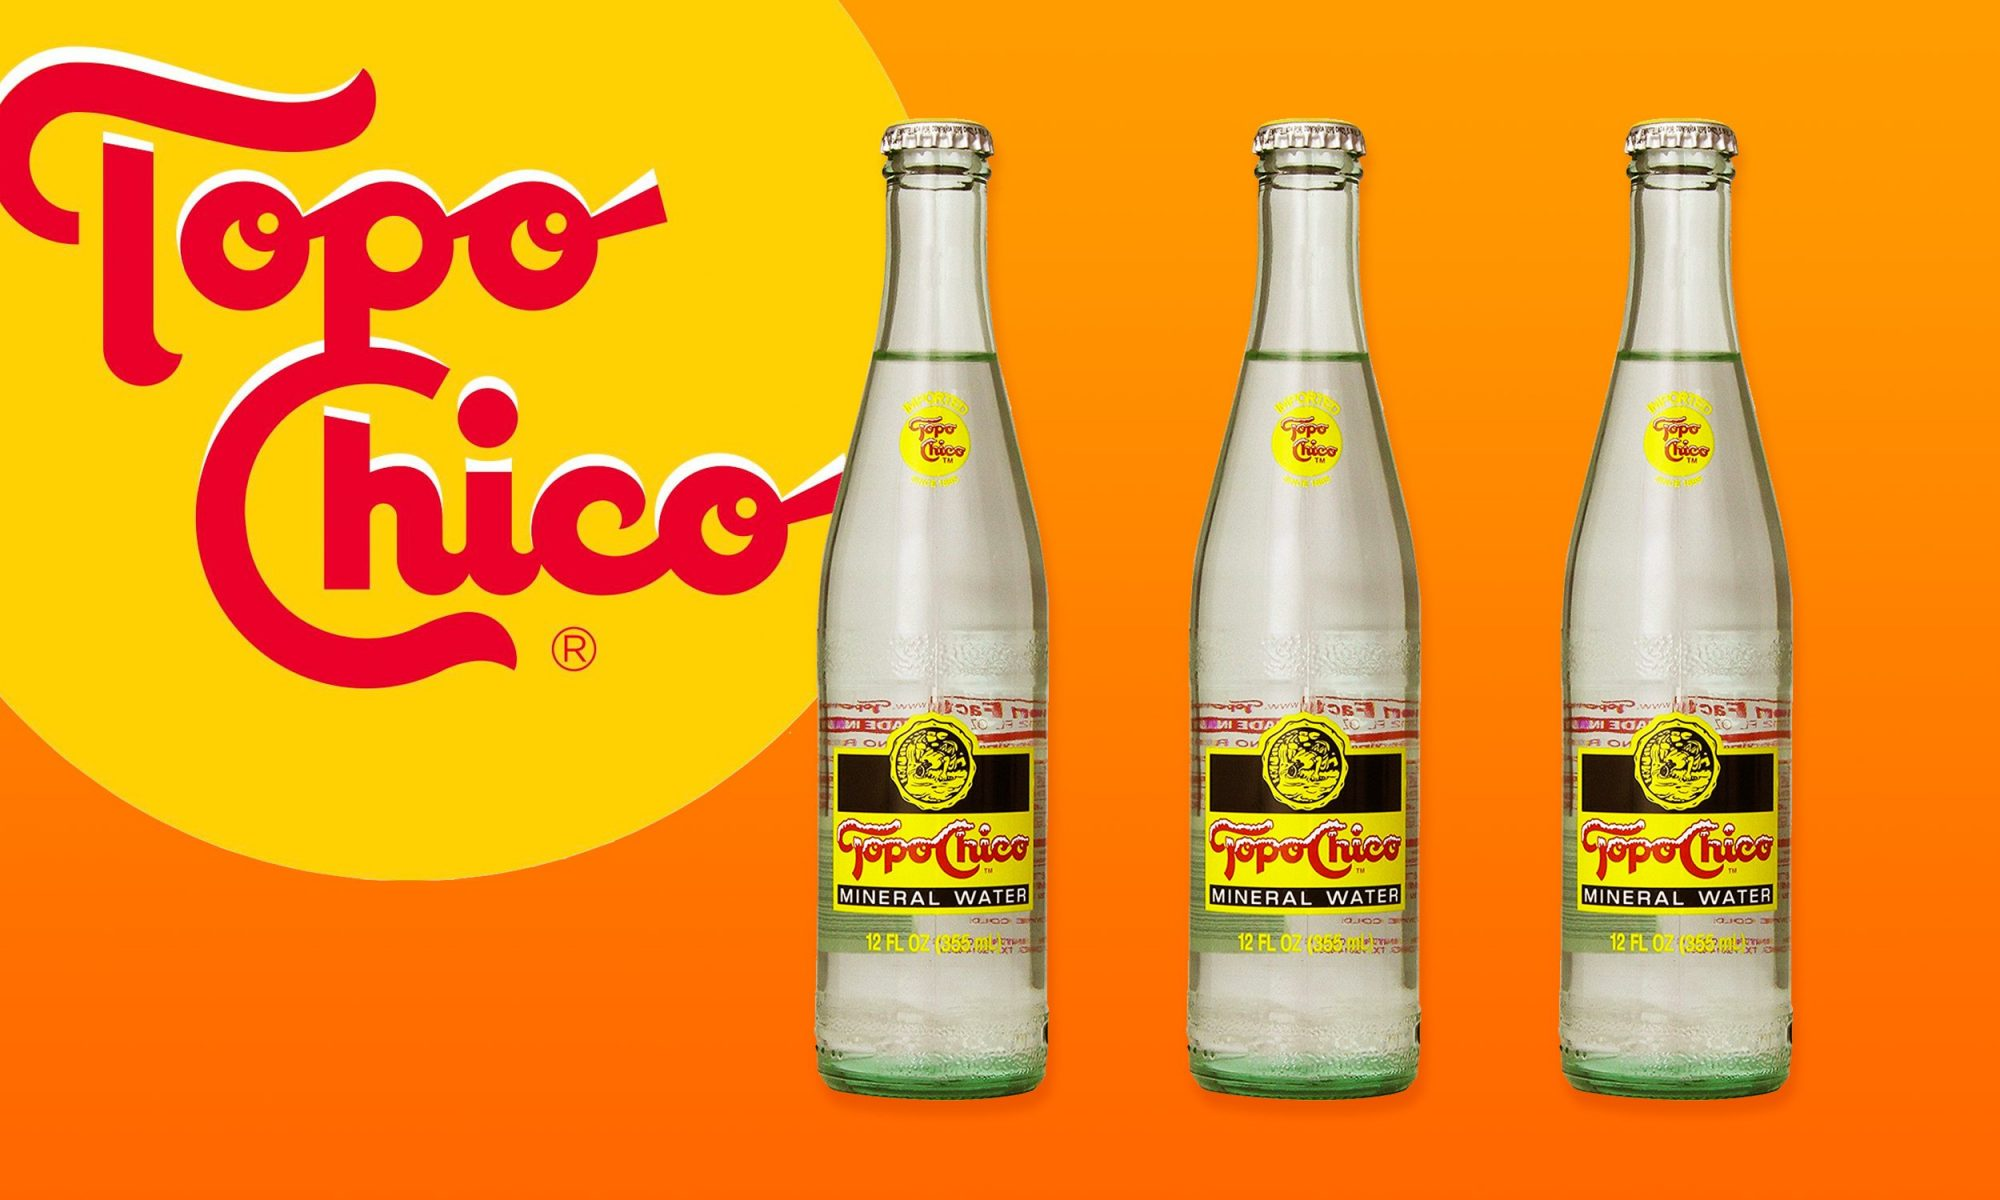 Why Topo Chico Is Big in Texas